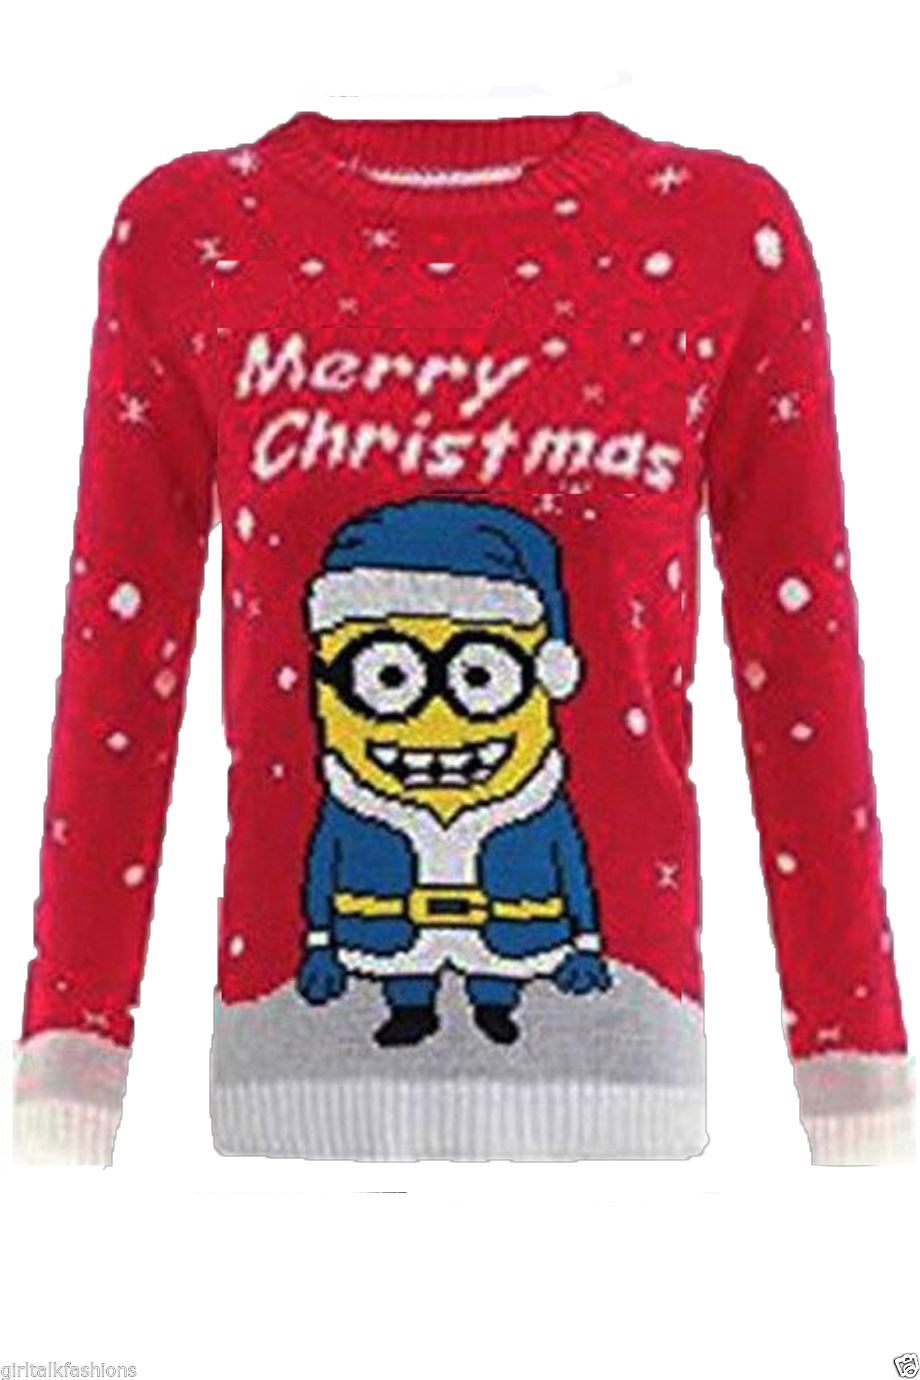 kinder jungen m dchen dave minion weihnachts pullover 5 12 jahre ebay. Black Bedroom Furniture Sets. Home Design Ideas